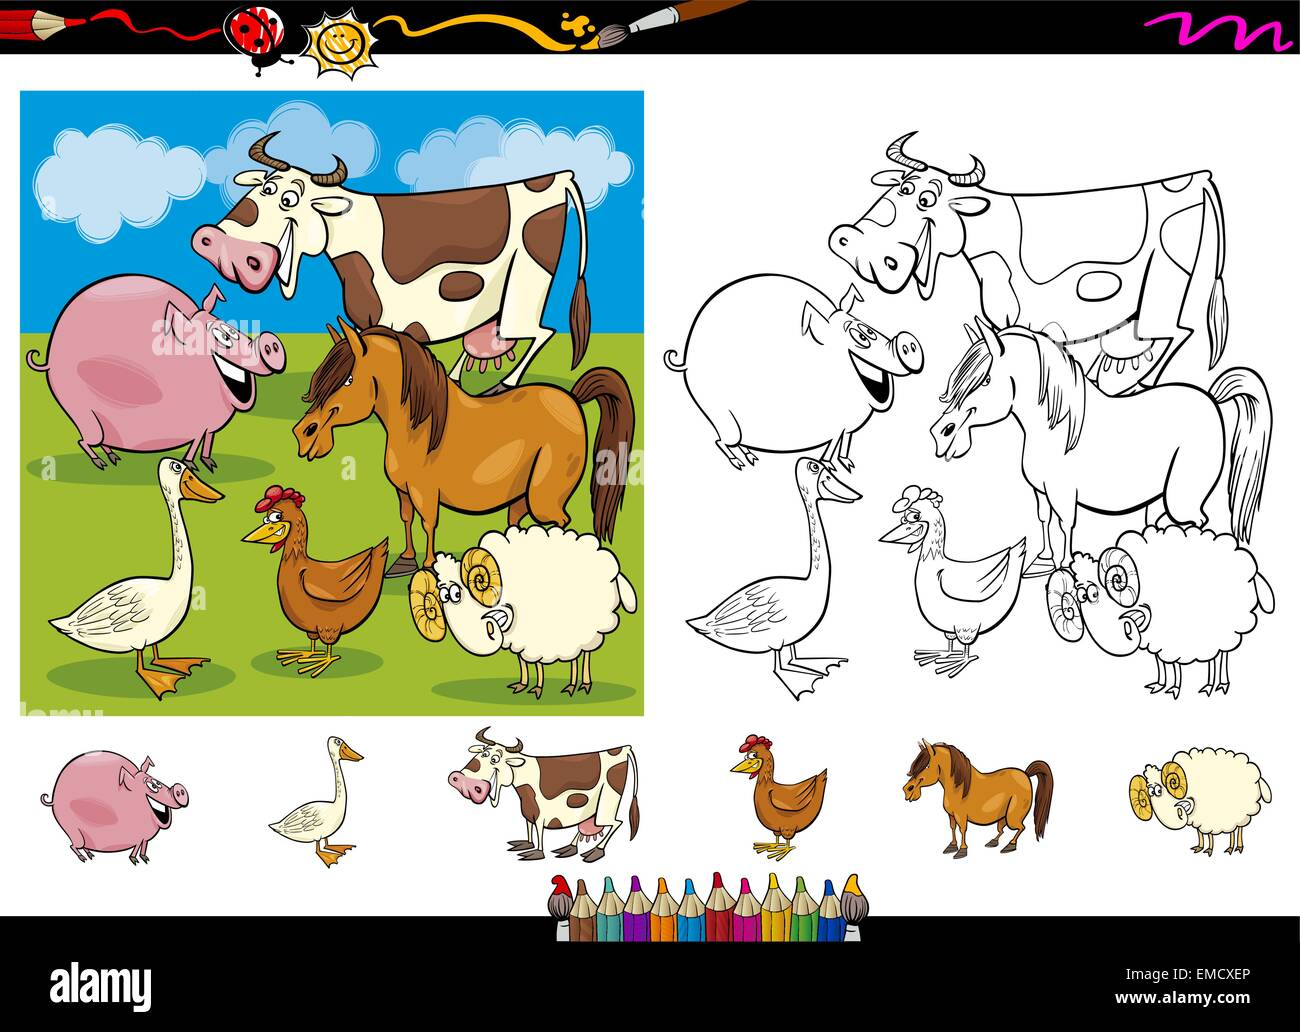 Cartoon Illustration Funny Comic Rooster Imágenes De Stock & Cartoon ...